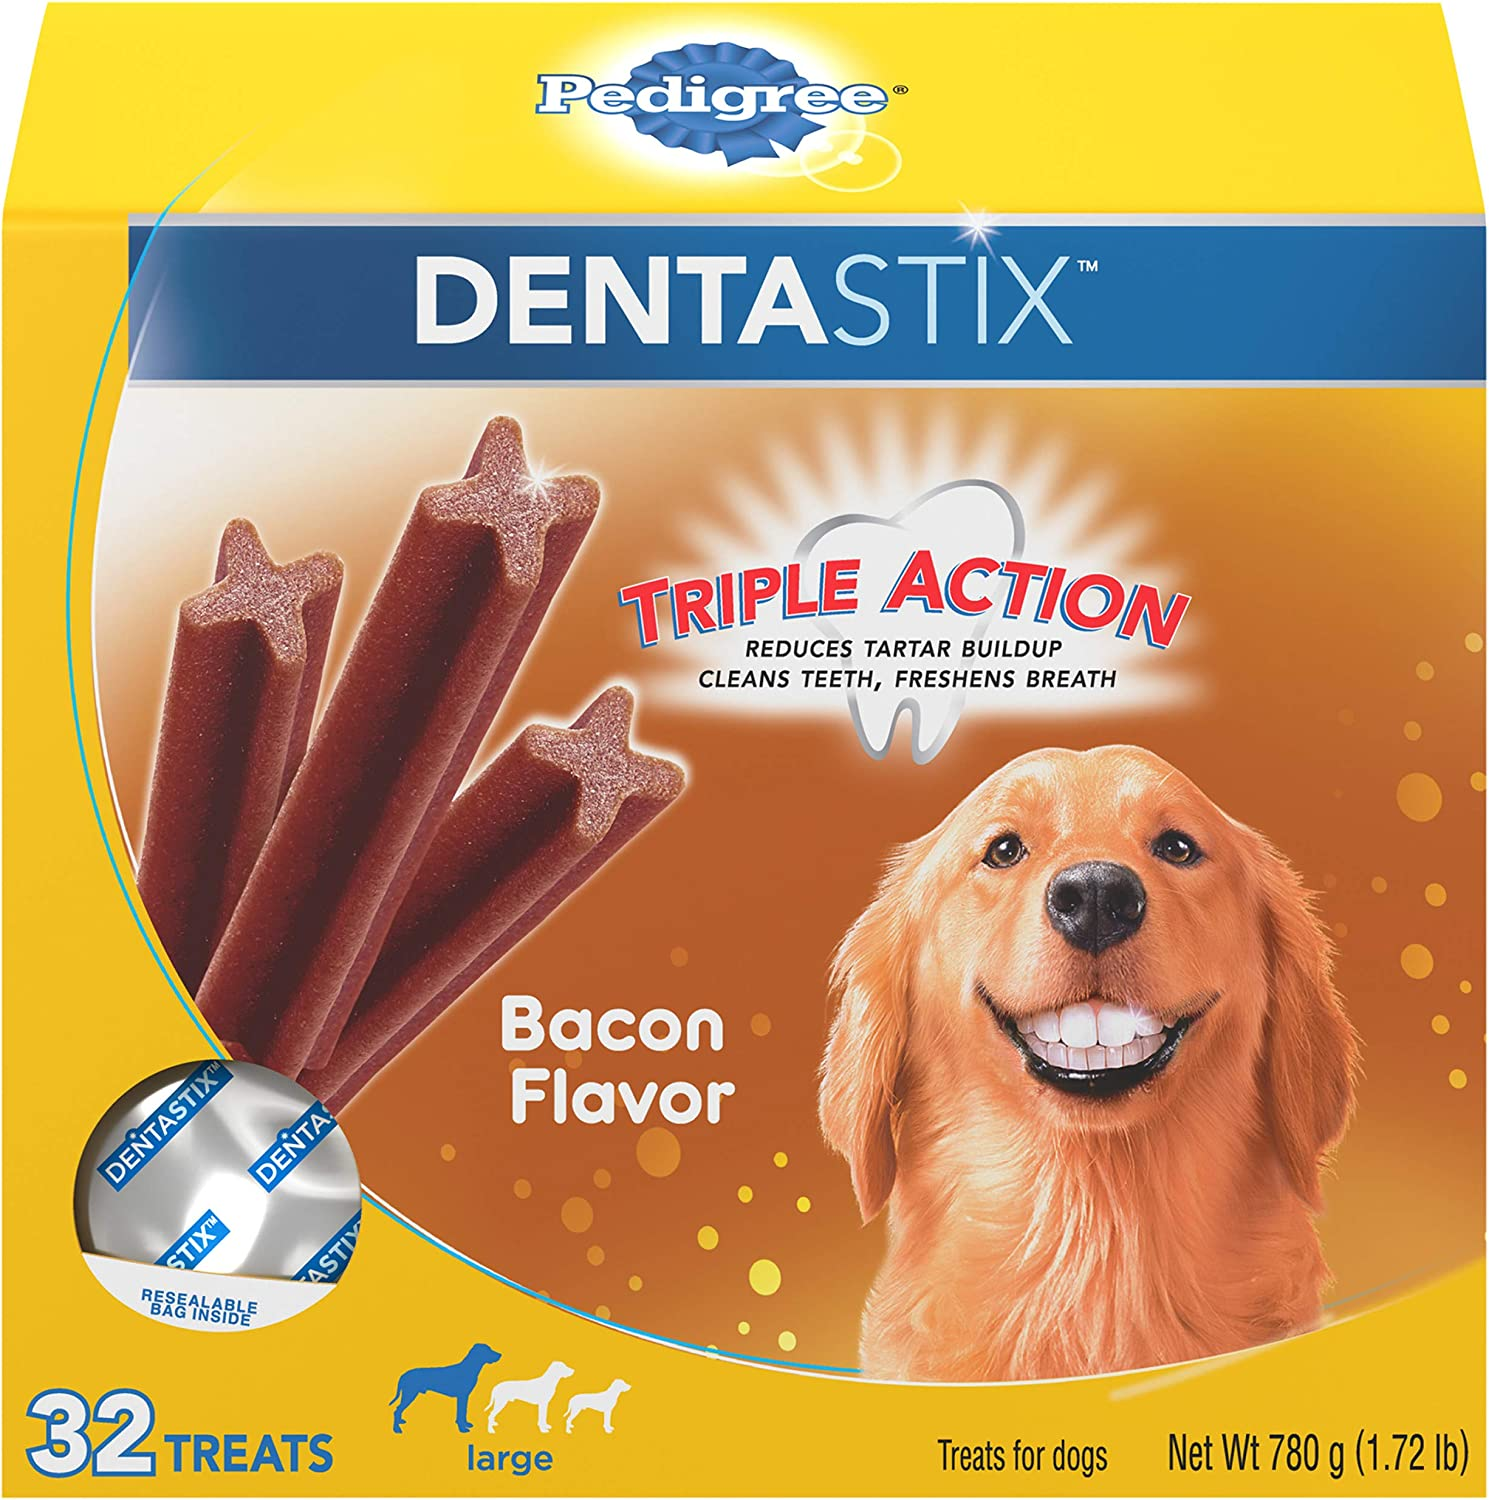 Bacon, Pack of 32 PEDIGREE DENTASTIX Large Dog Chew Treats Reduces Plaque and Tartar Buildup